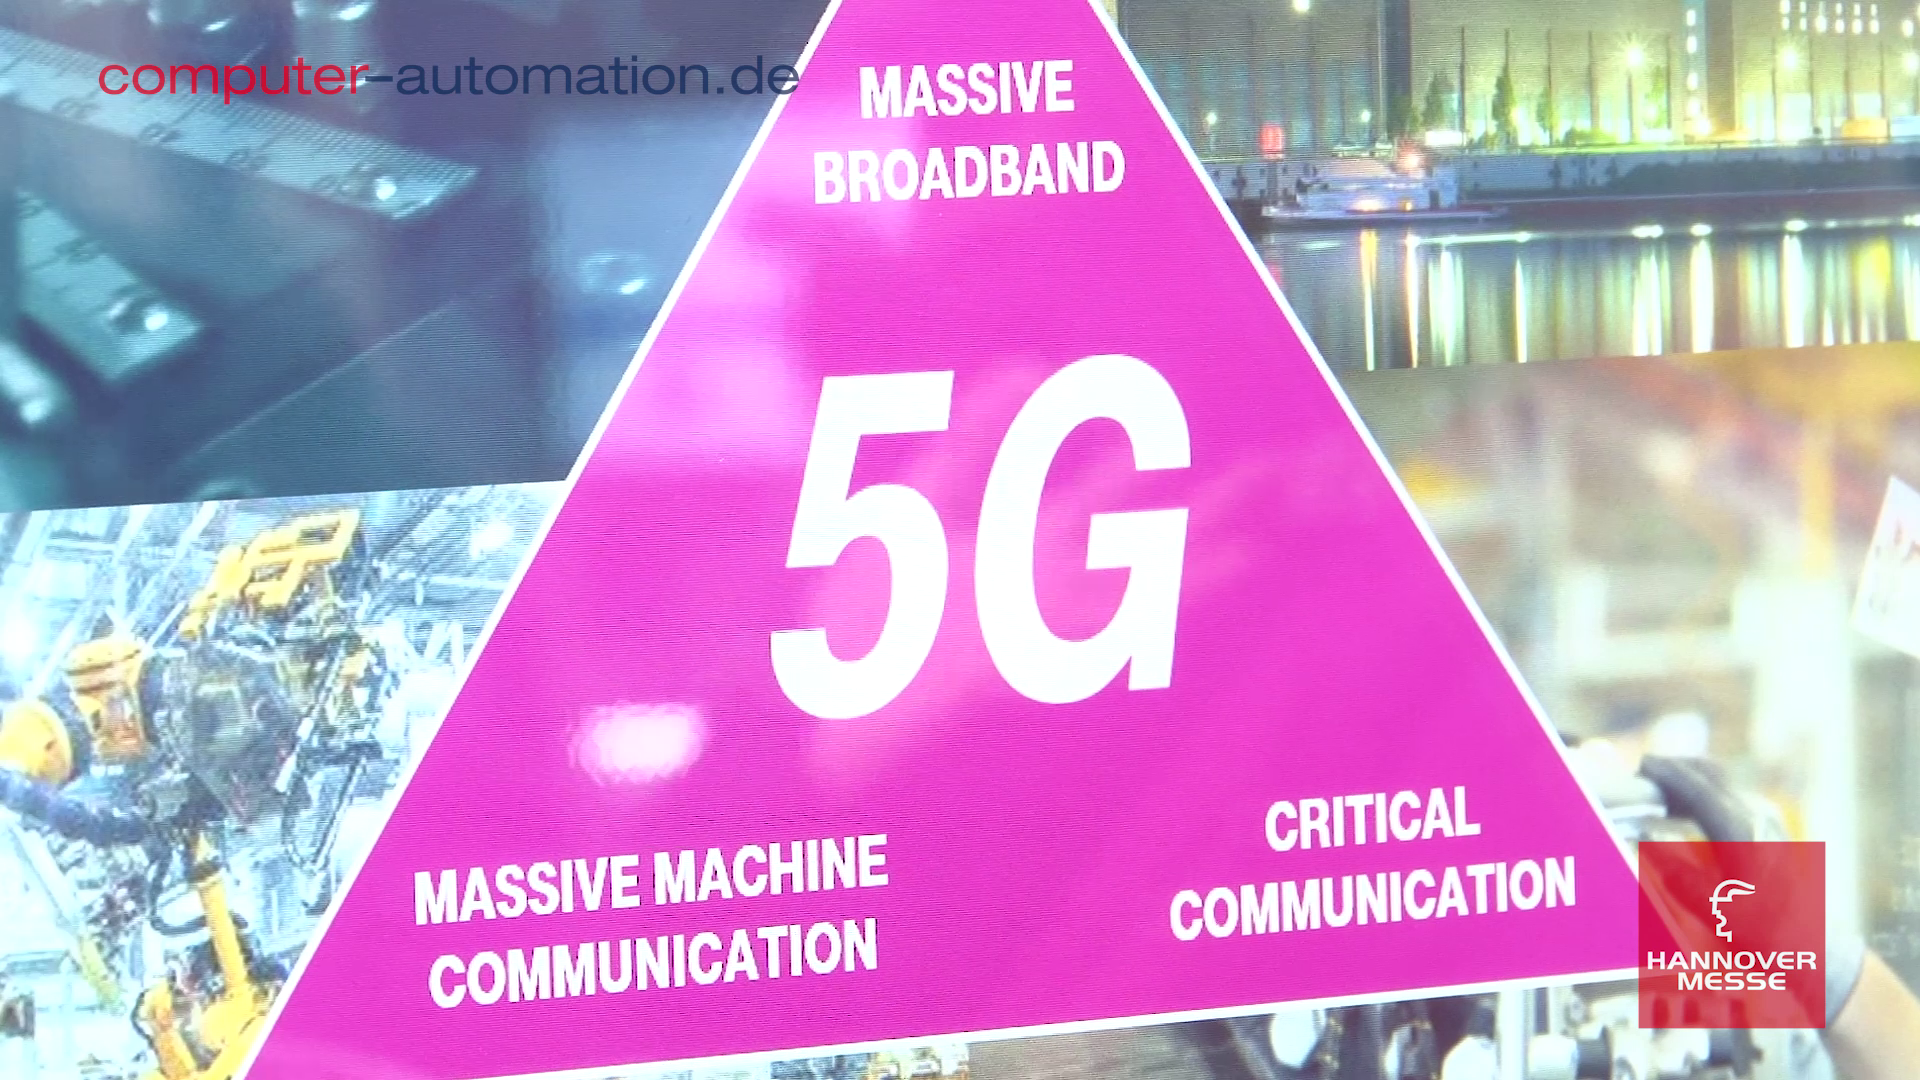 Hannover Messe 2018: 5G in der Industrie